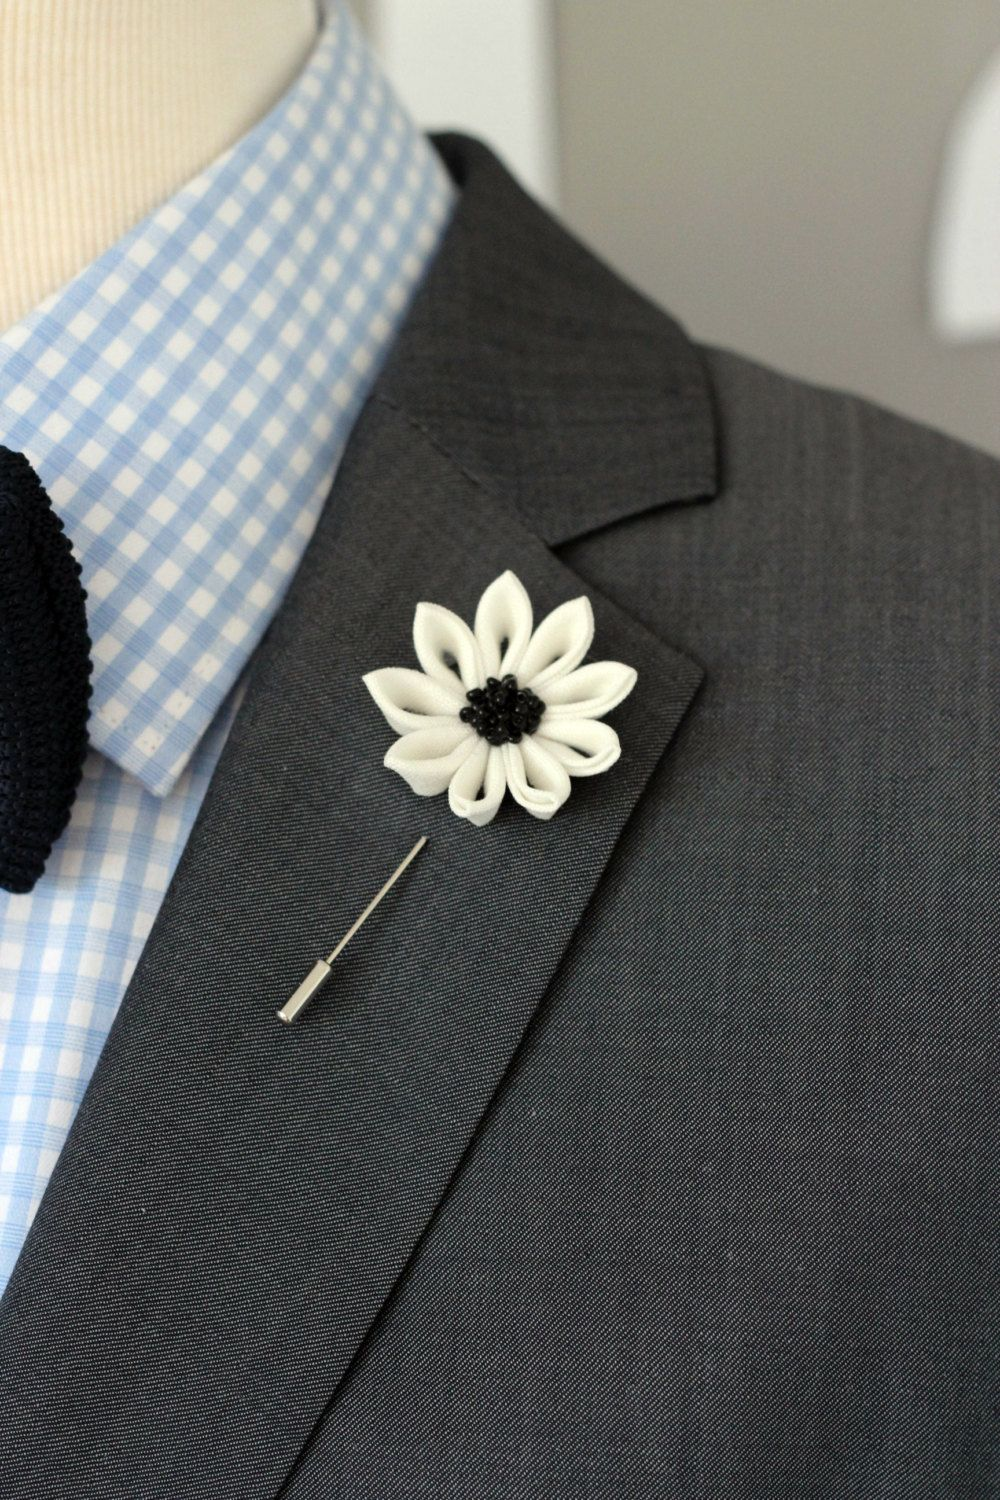 Elegant White Flower Lapel Pin Mens By Nevestica